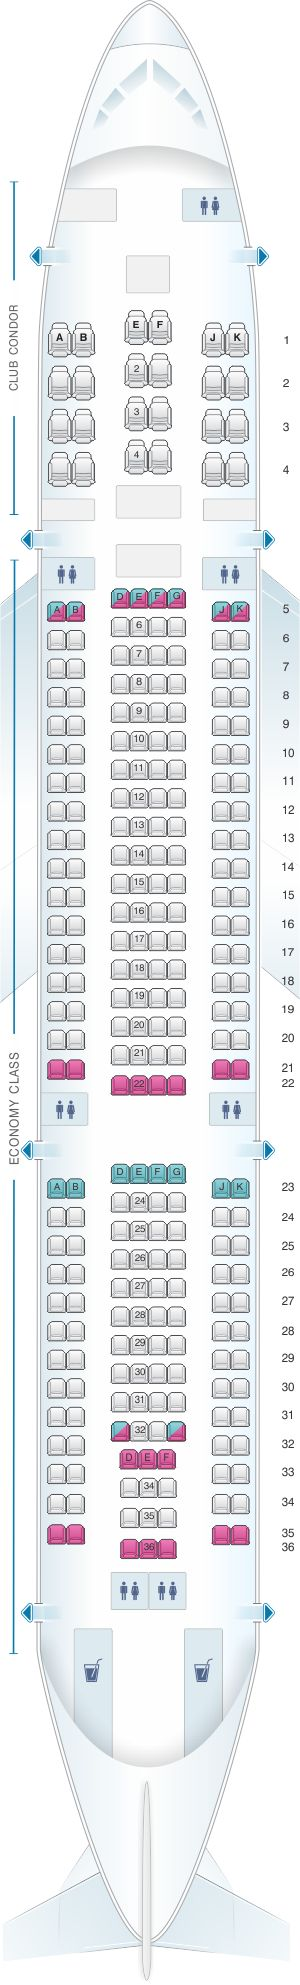 Seat Map Aerolineas Argentinas Airbus A330 200